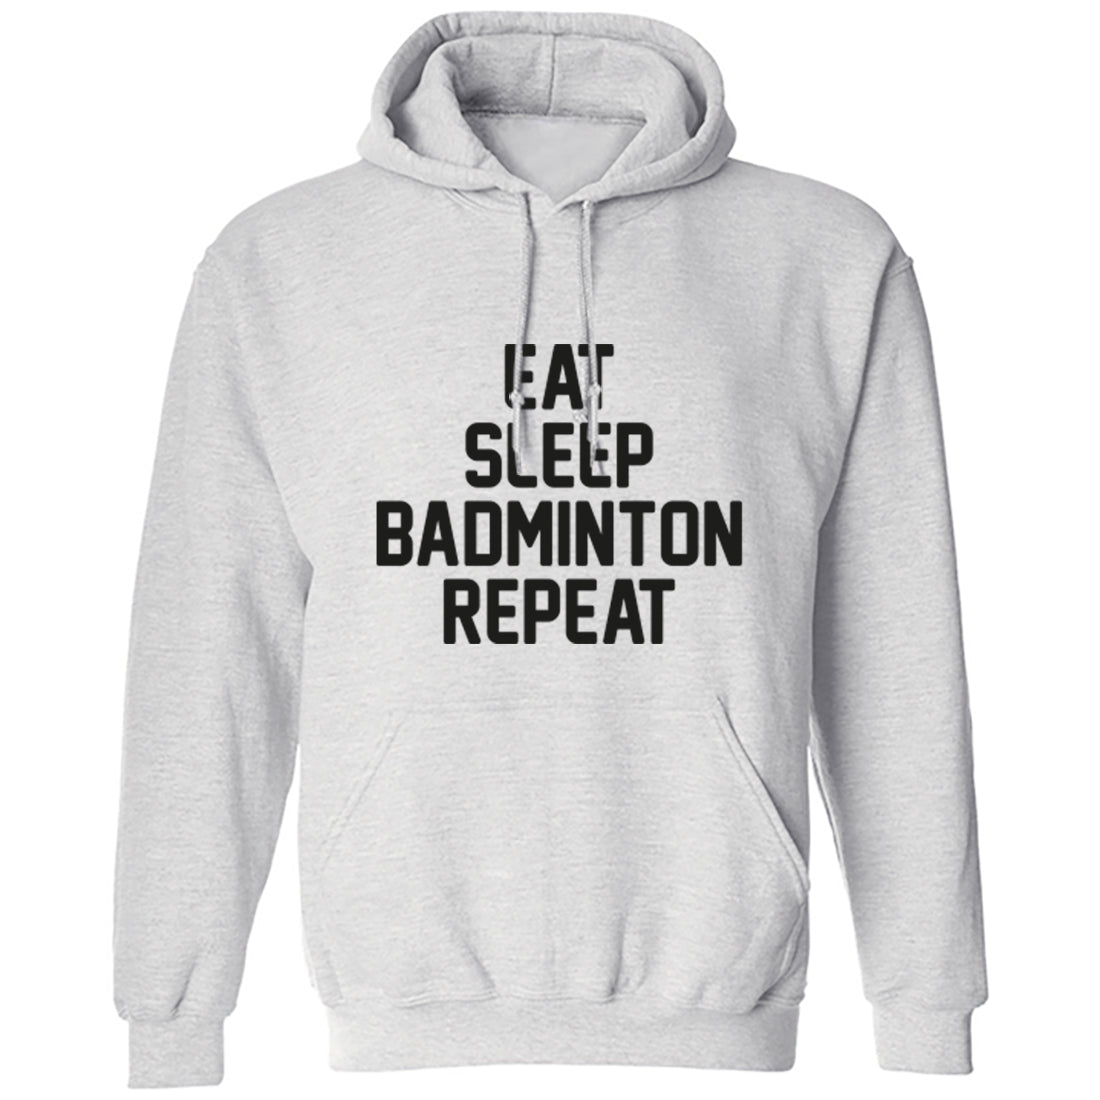 Eat Sleep Badminton Repeat Unisex Hoodie K0885 - Illustrated Identity Ltd.